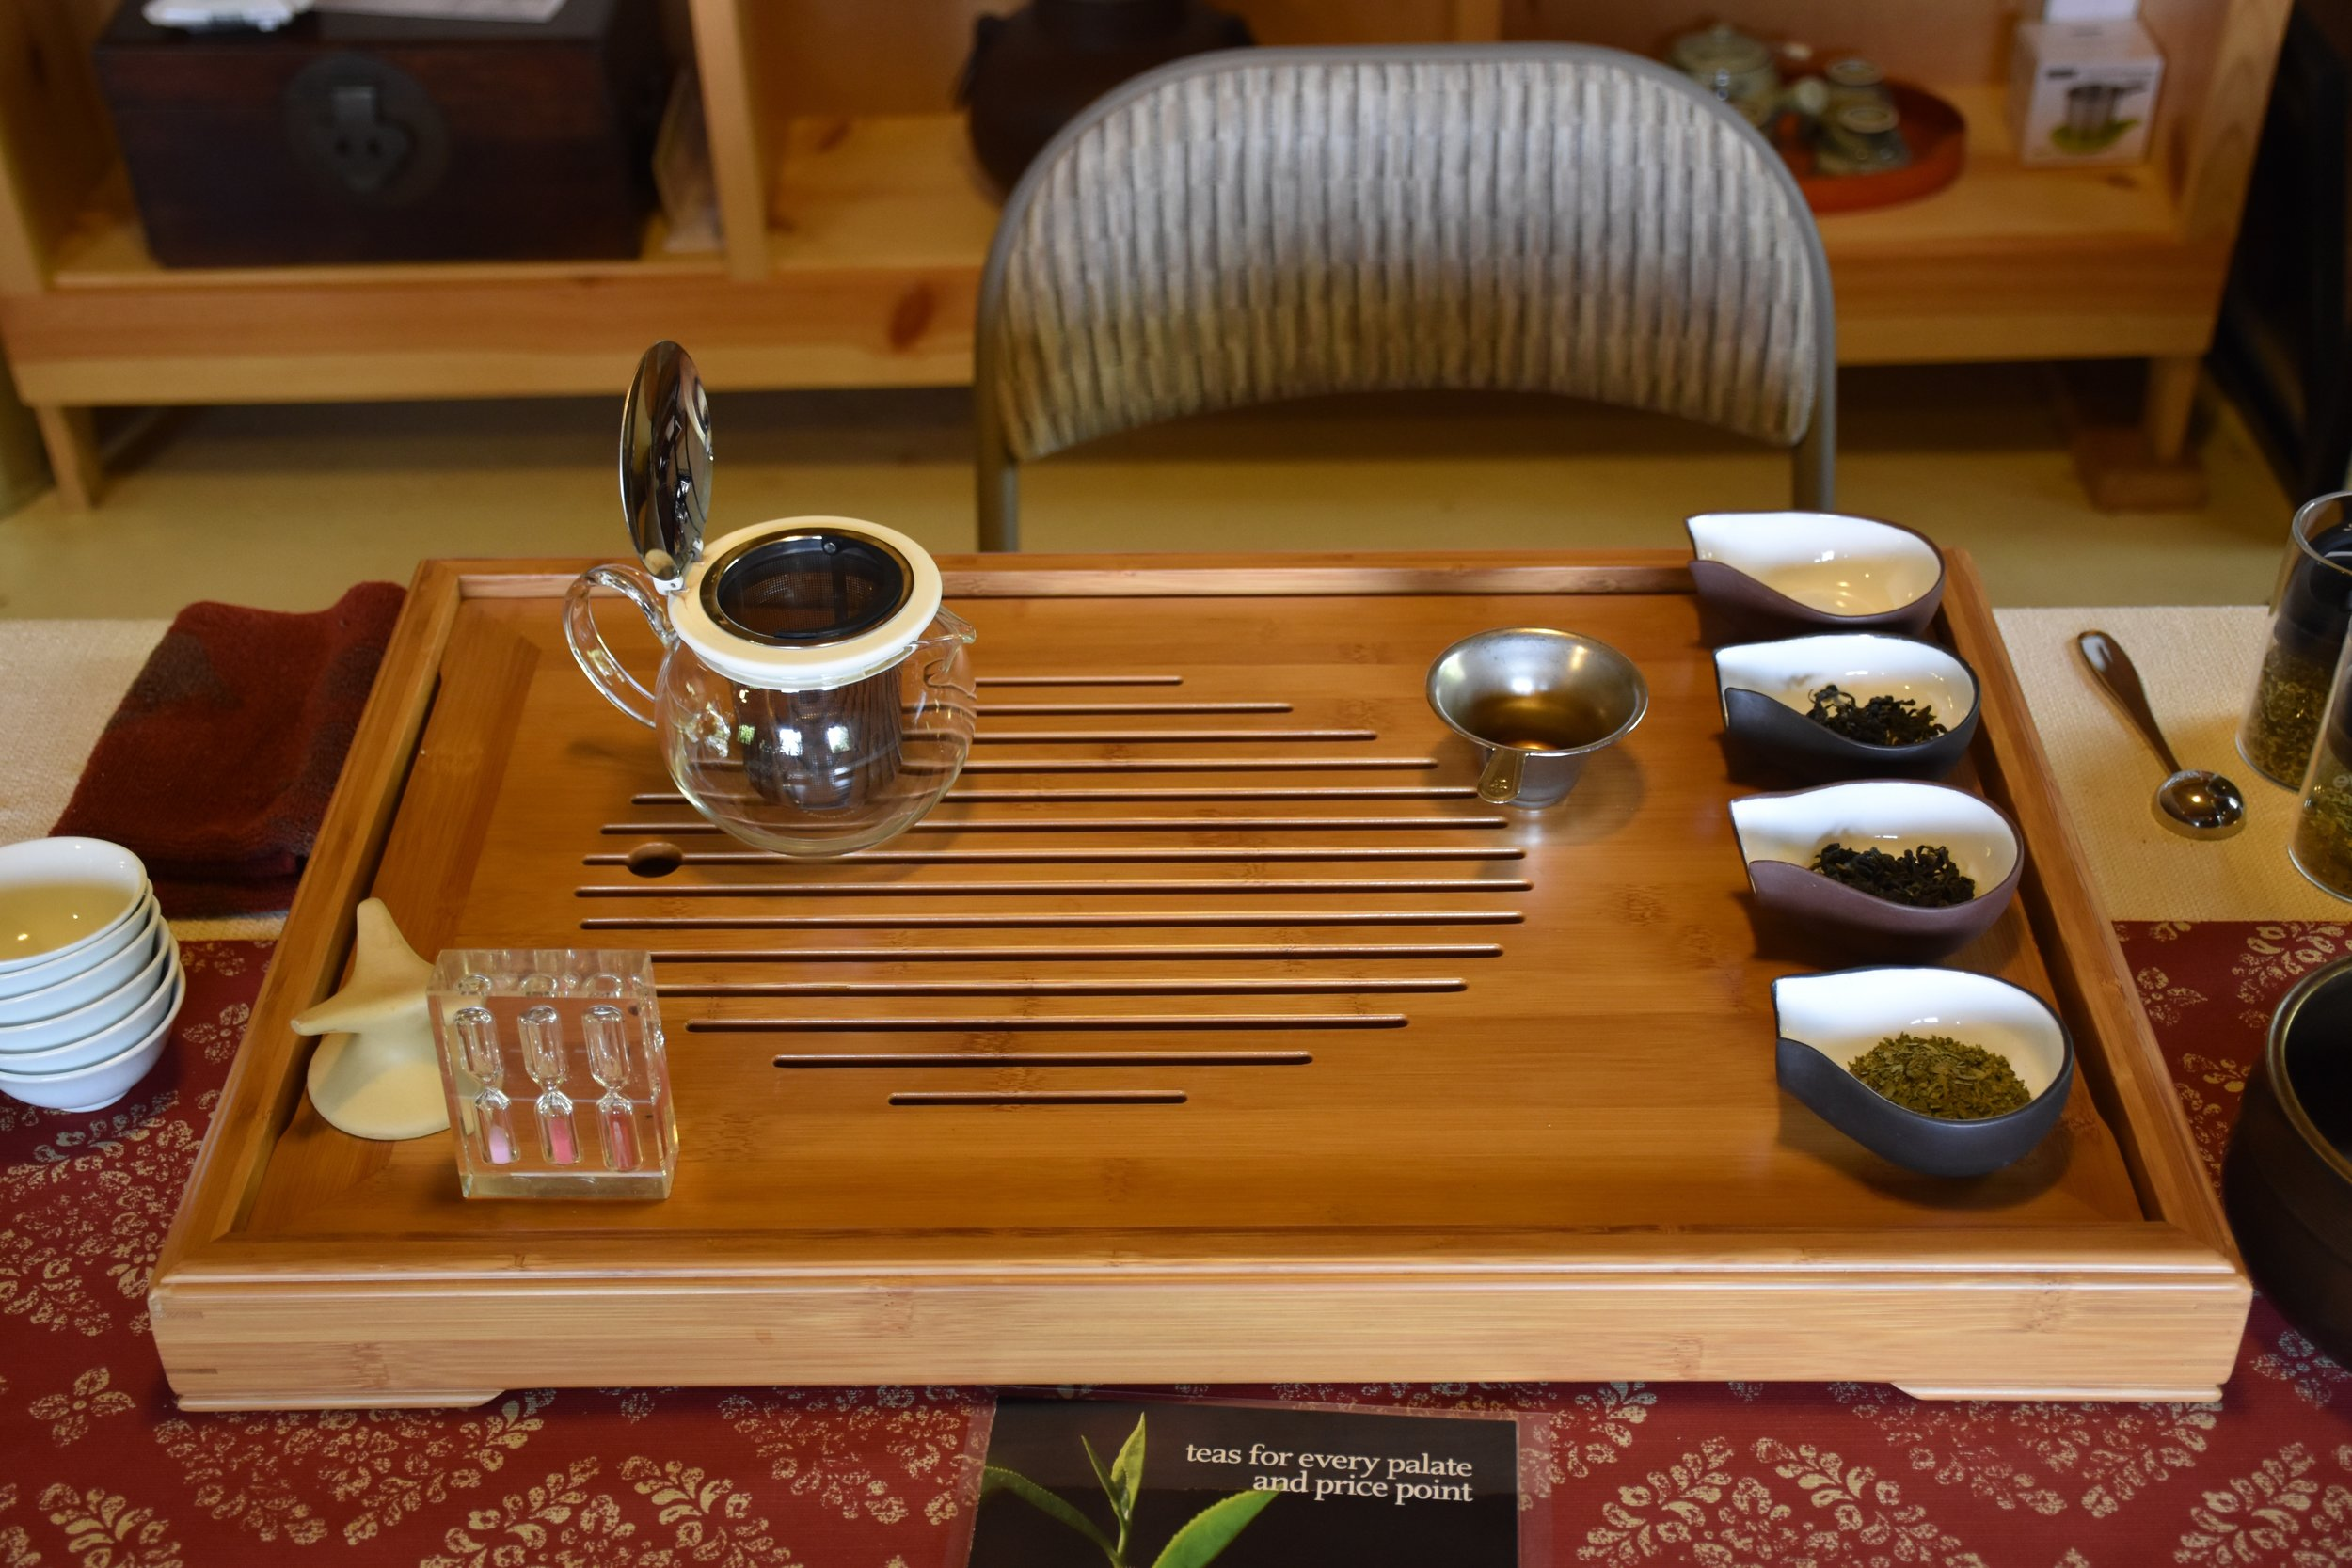 Tea Tasting at Mauna Kea Tea